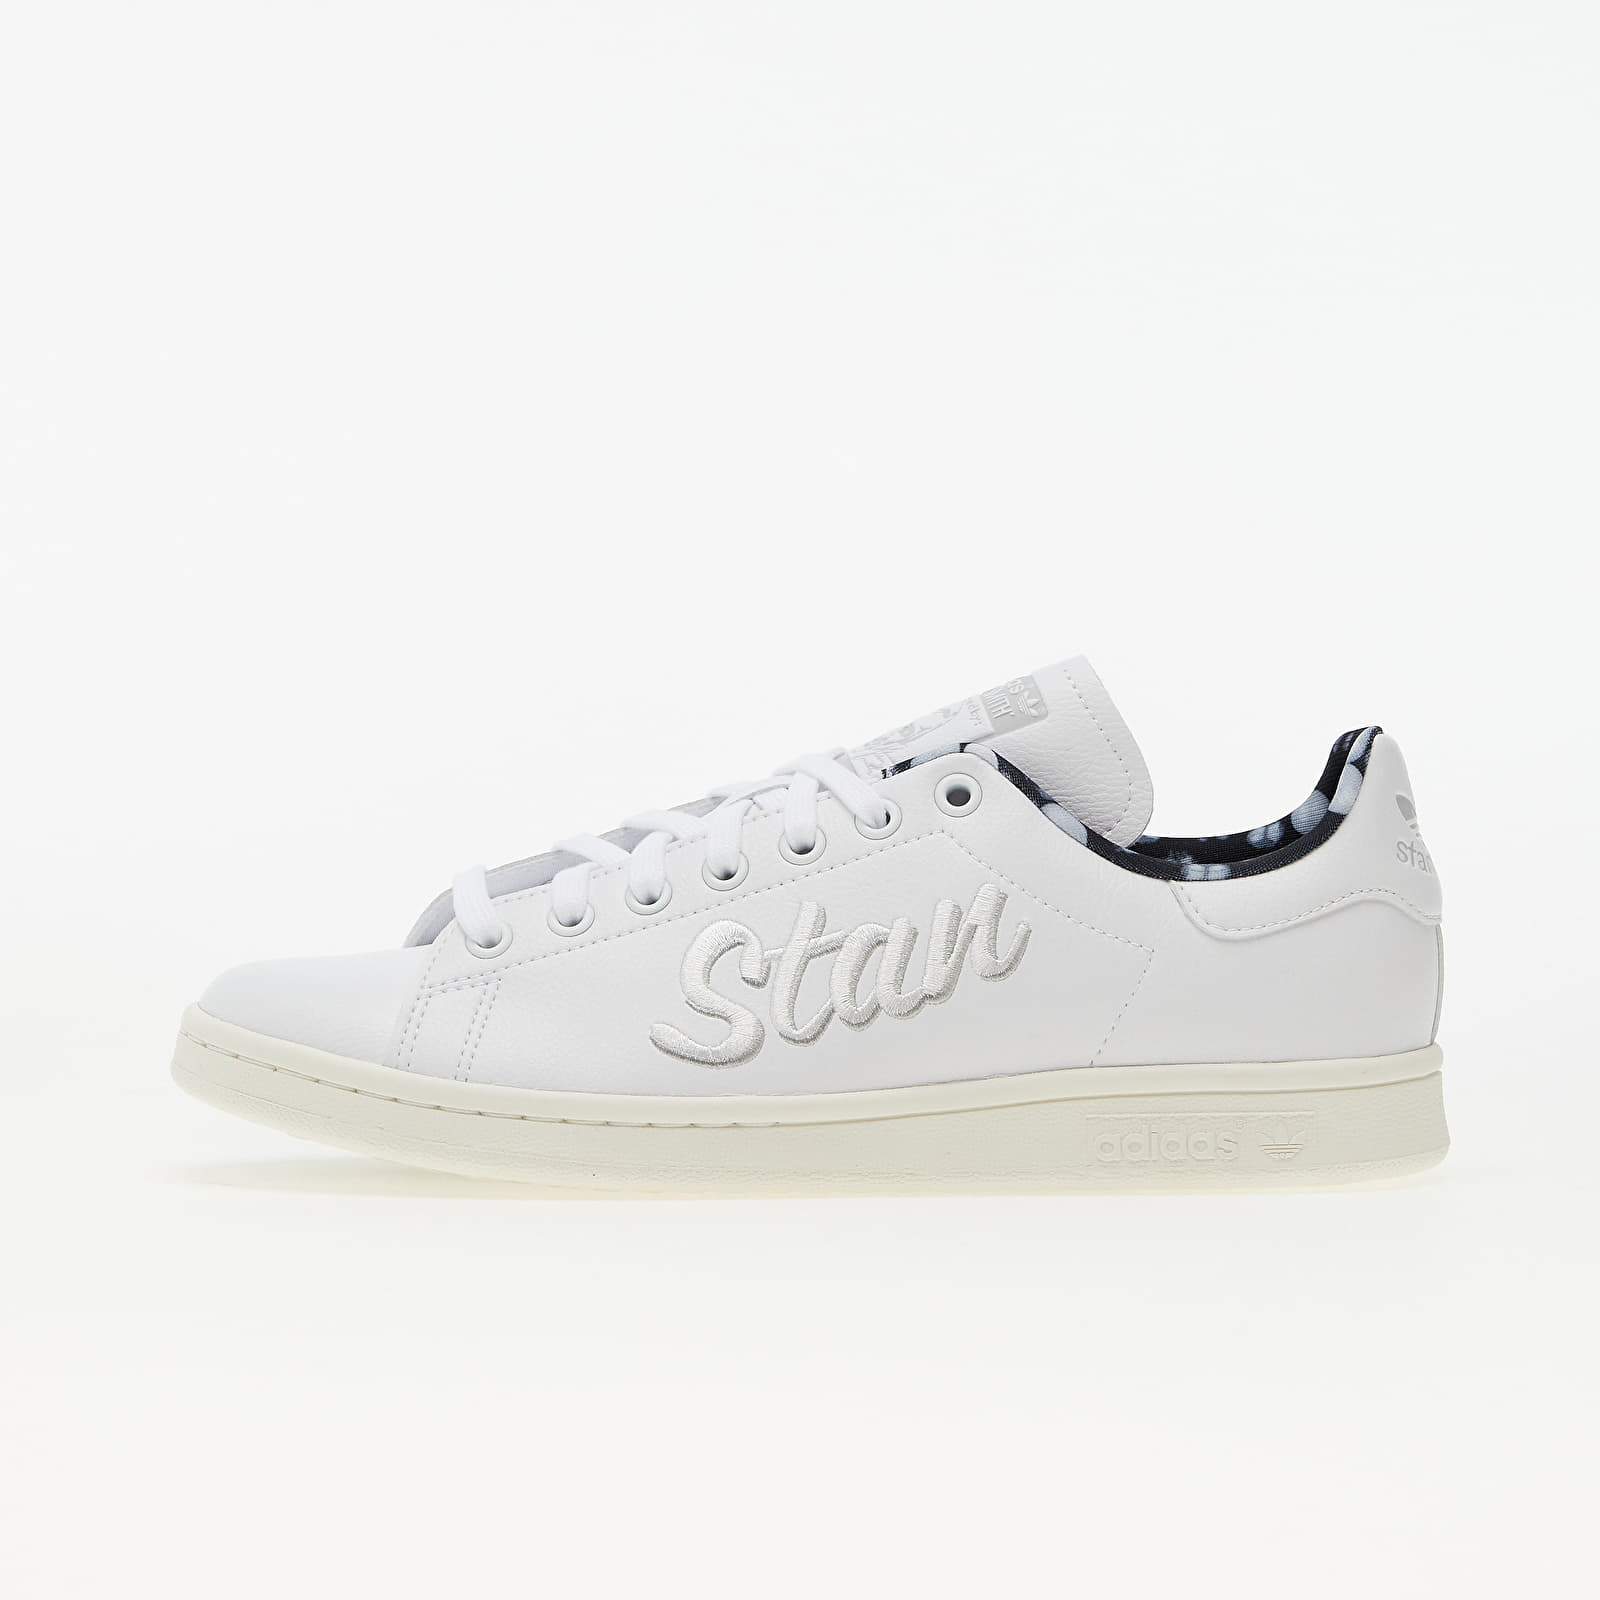 adidas Stan Smith Ftw White/ Off White/ Core Black EUR 44